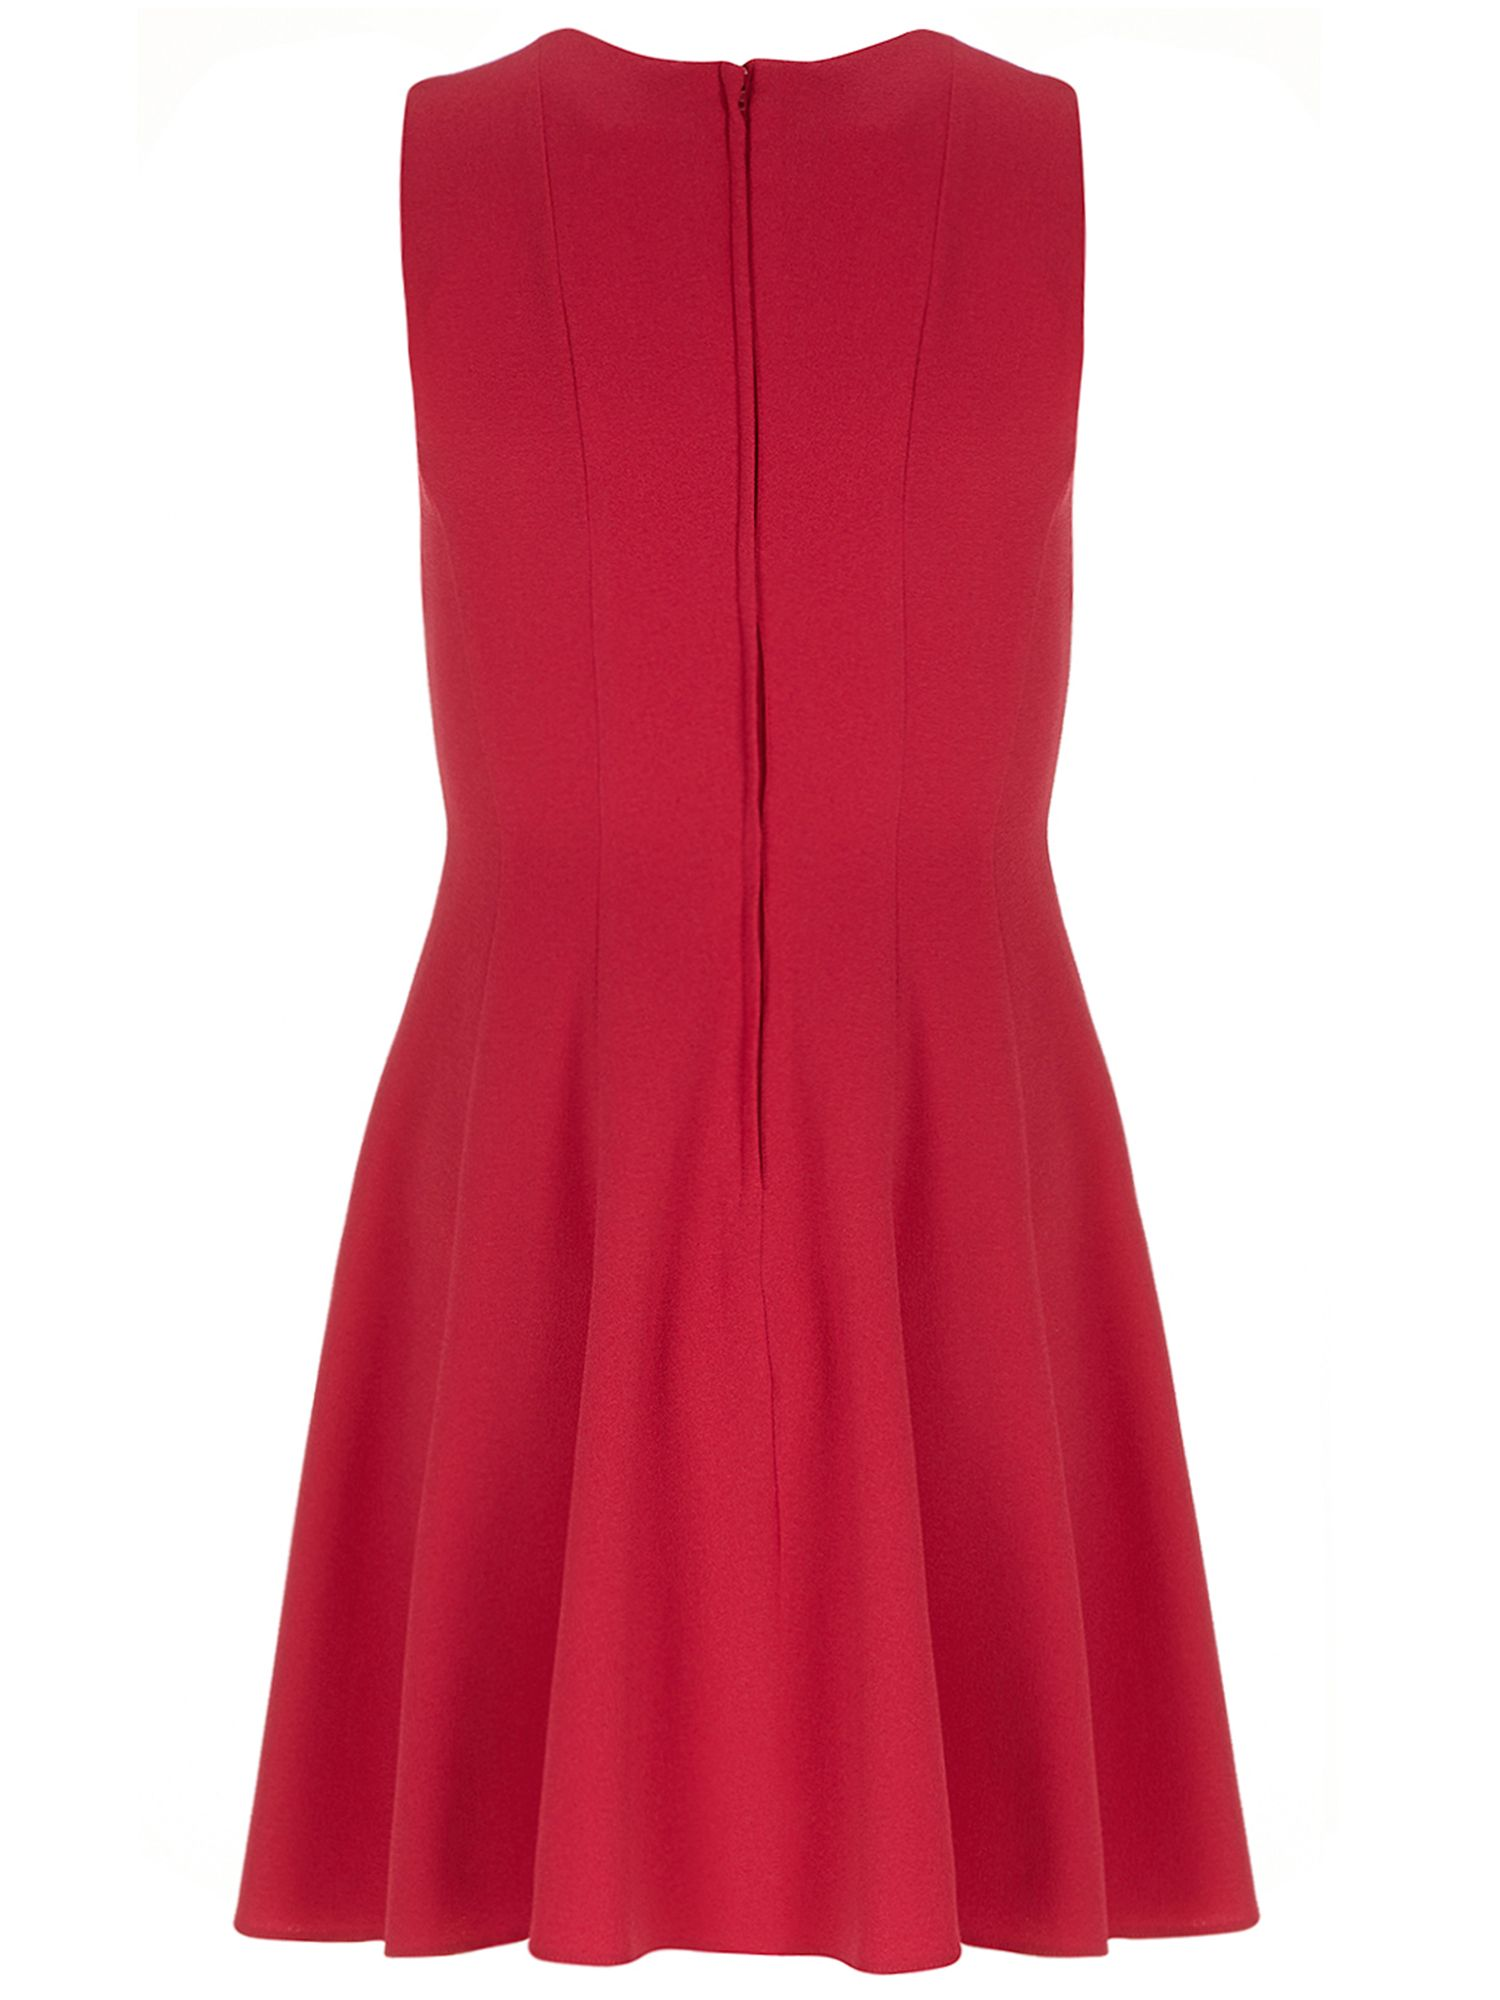 Petite crepe fit and flare dress